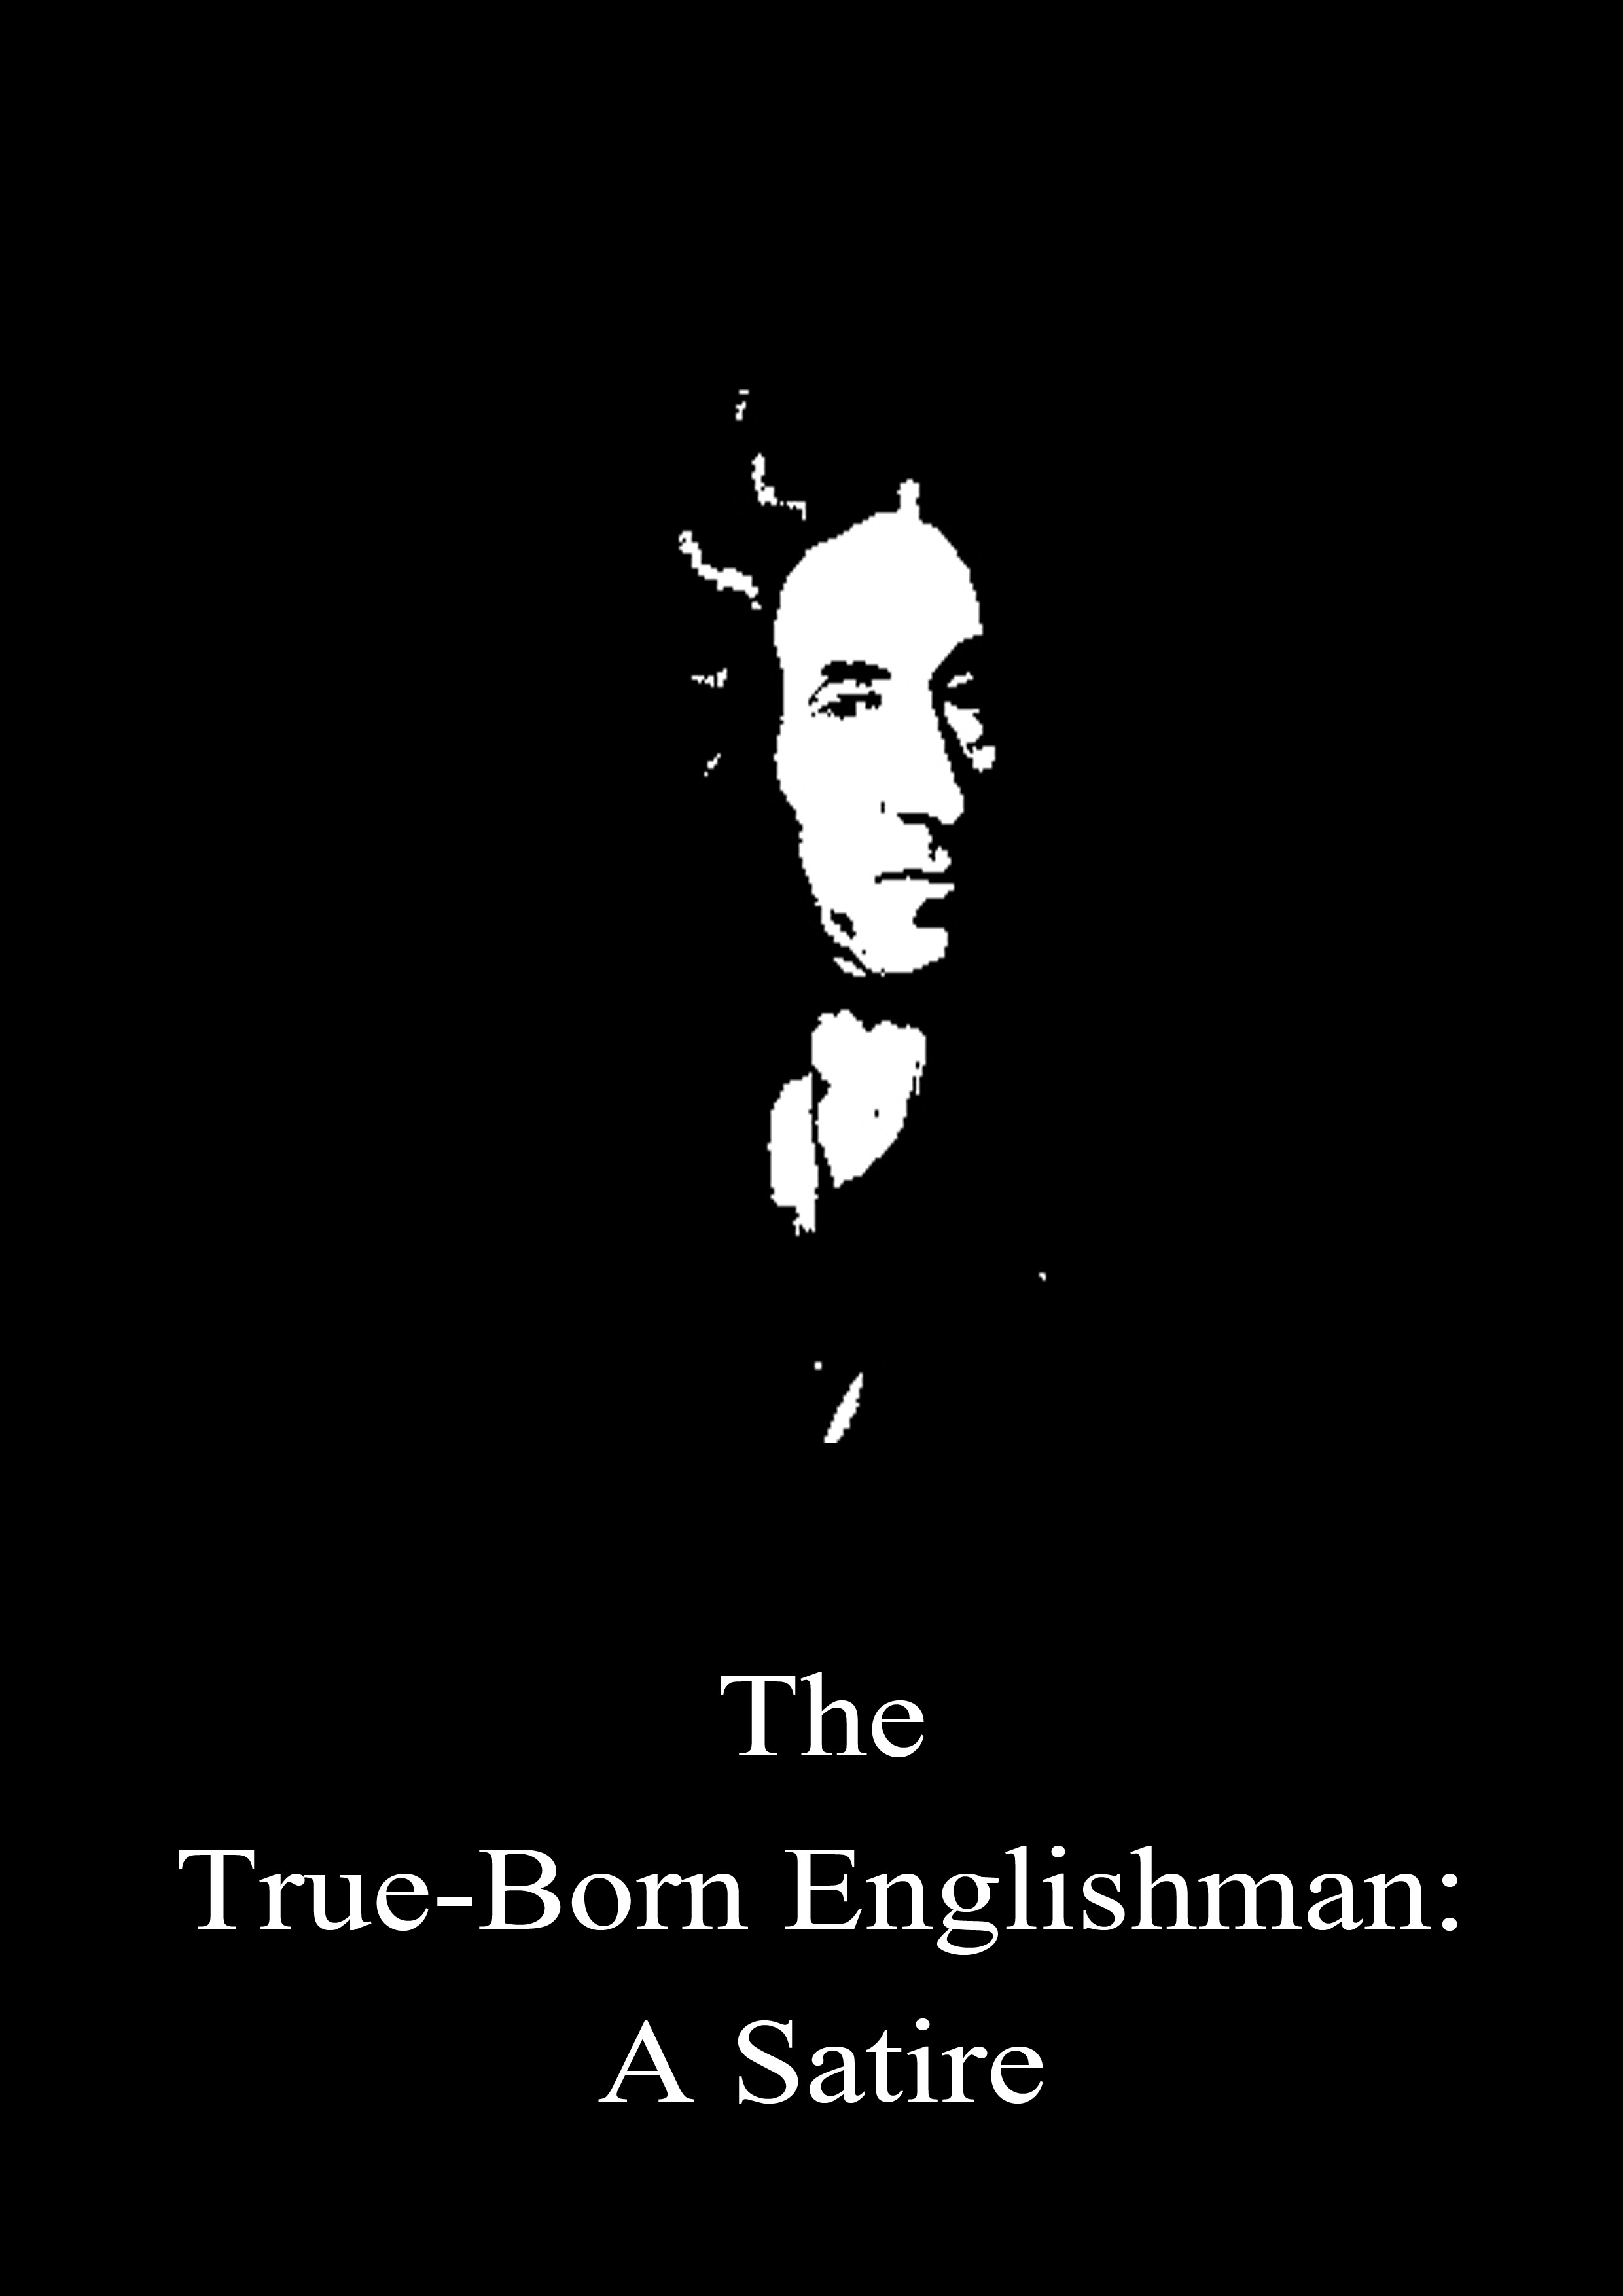 The True-Born Englishman: A Satire By: Daniel Defoe